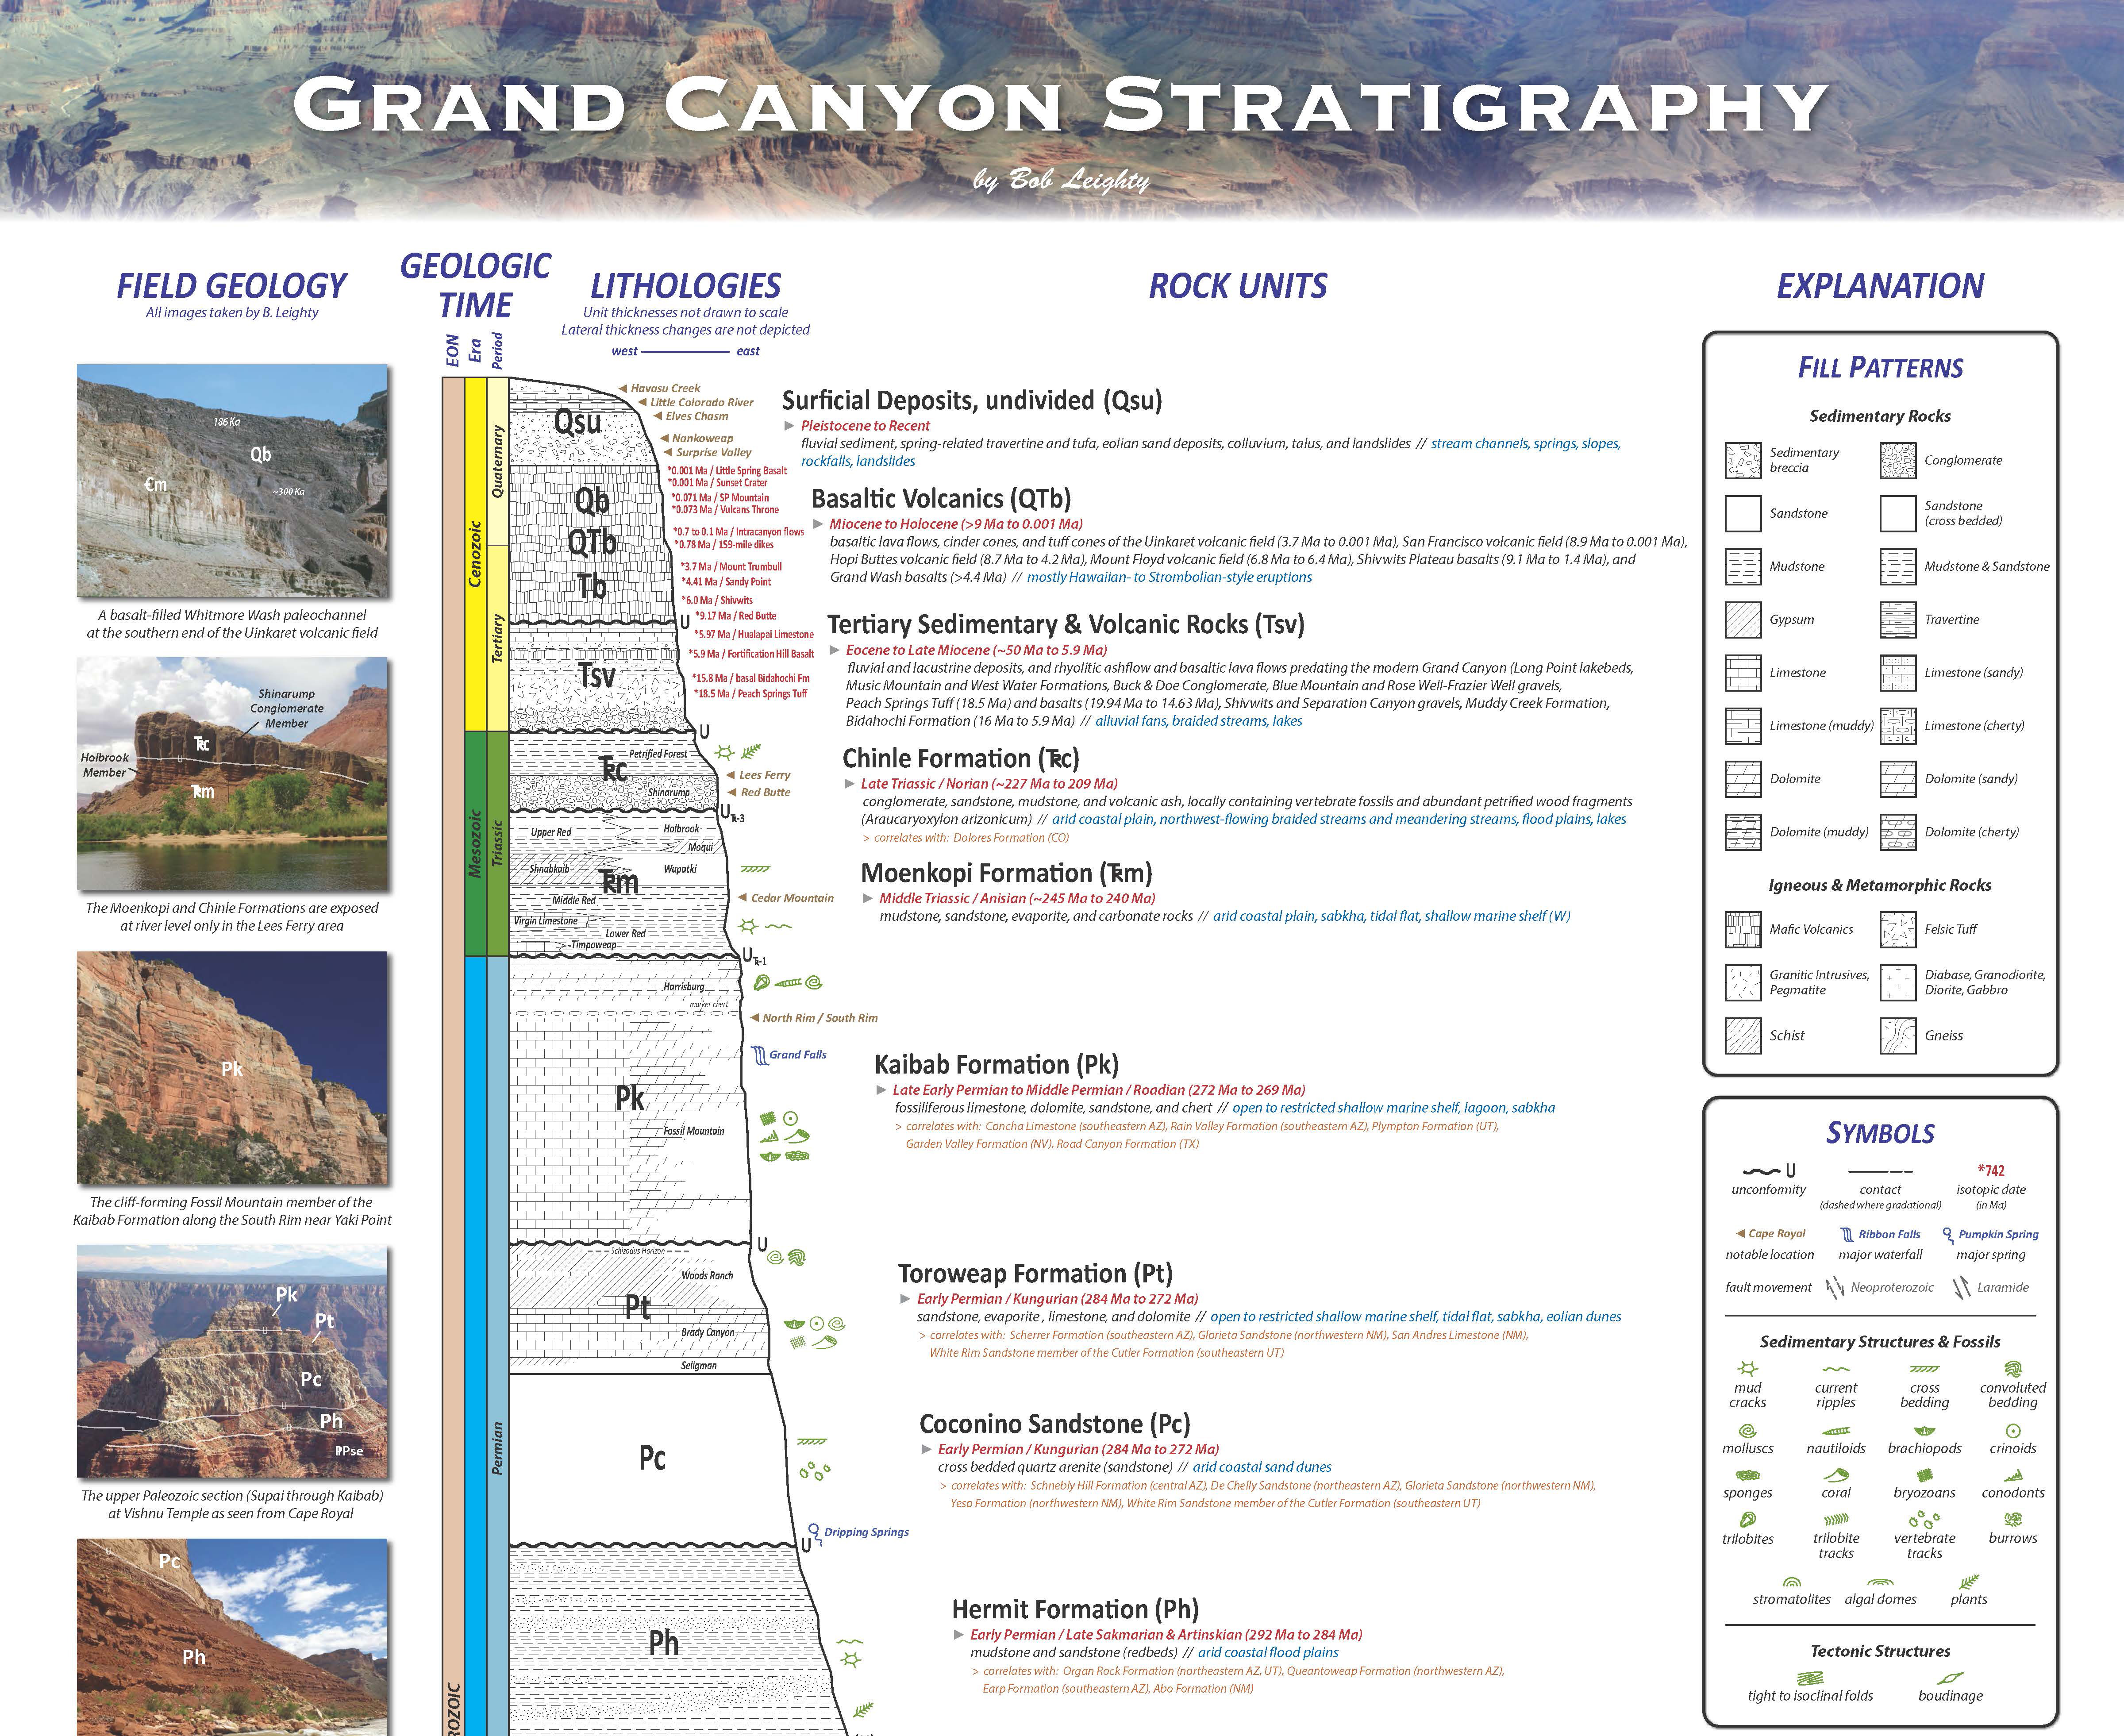 Leighty - Grand Canyon Stratigraphy